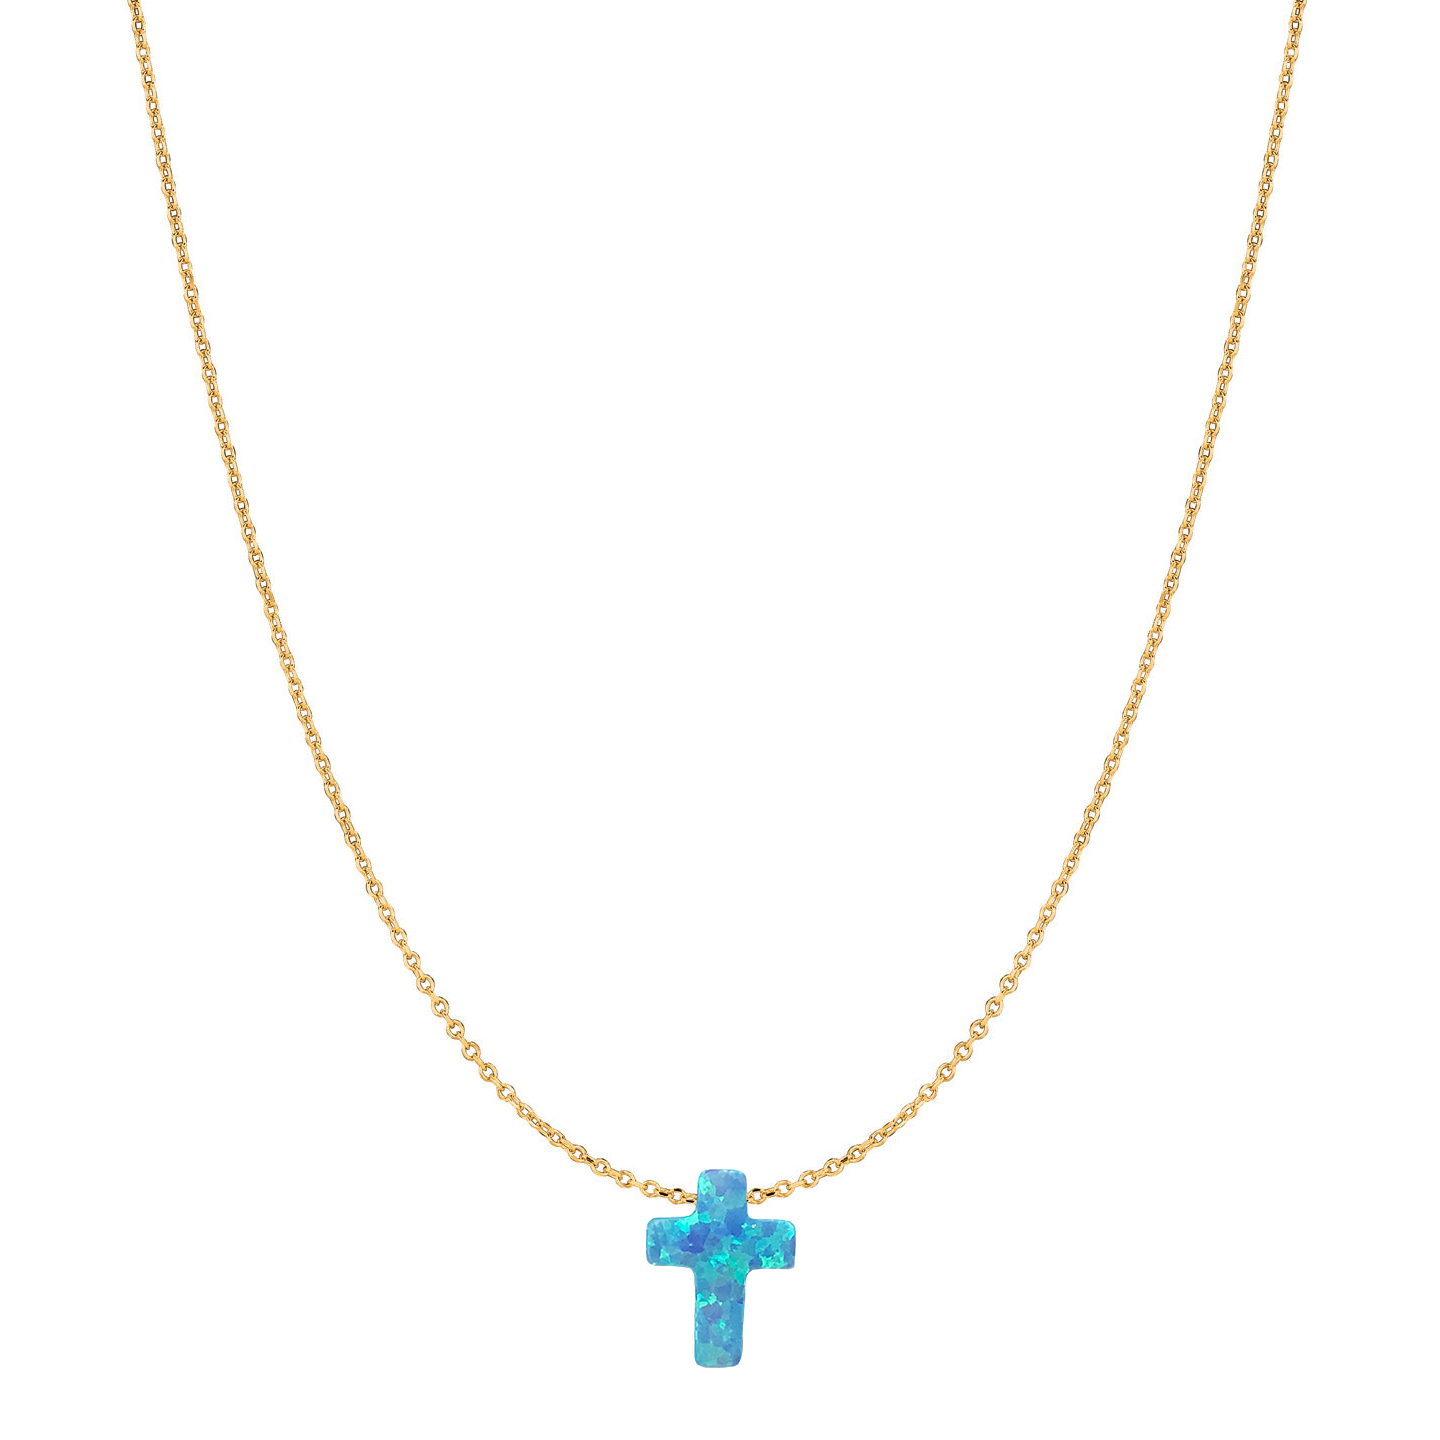 14 Karat Gold Light Blue Opal Cross Necklace